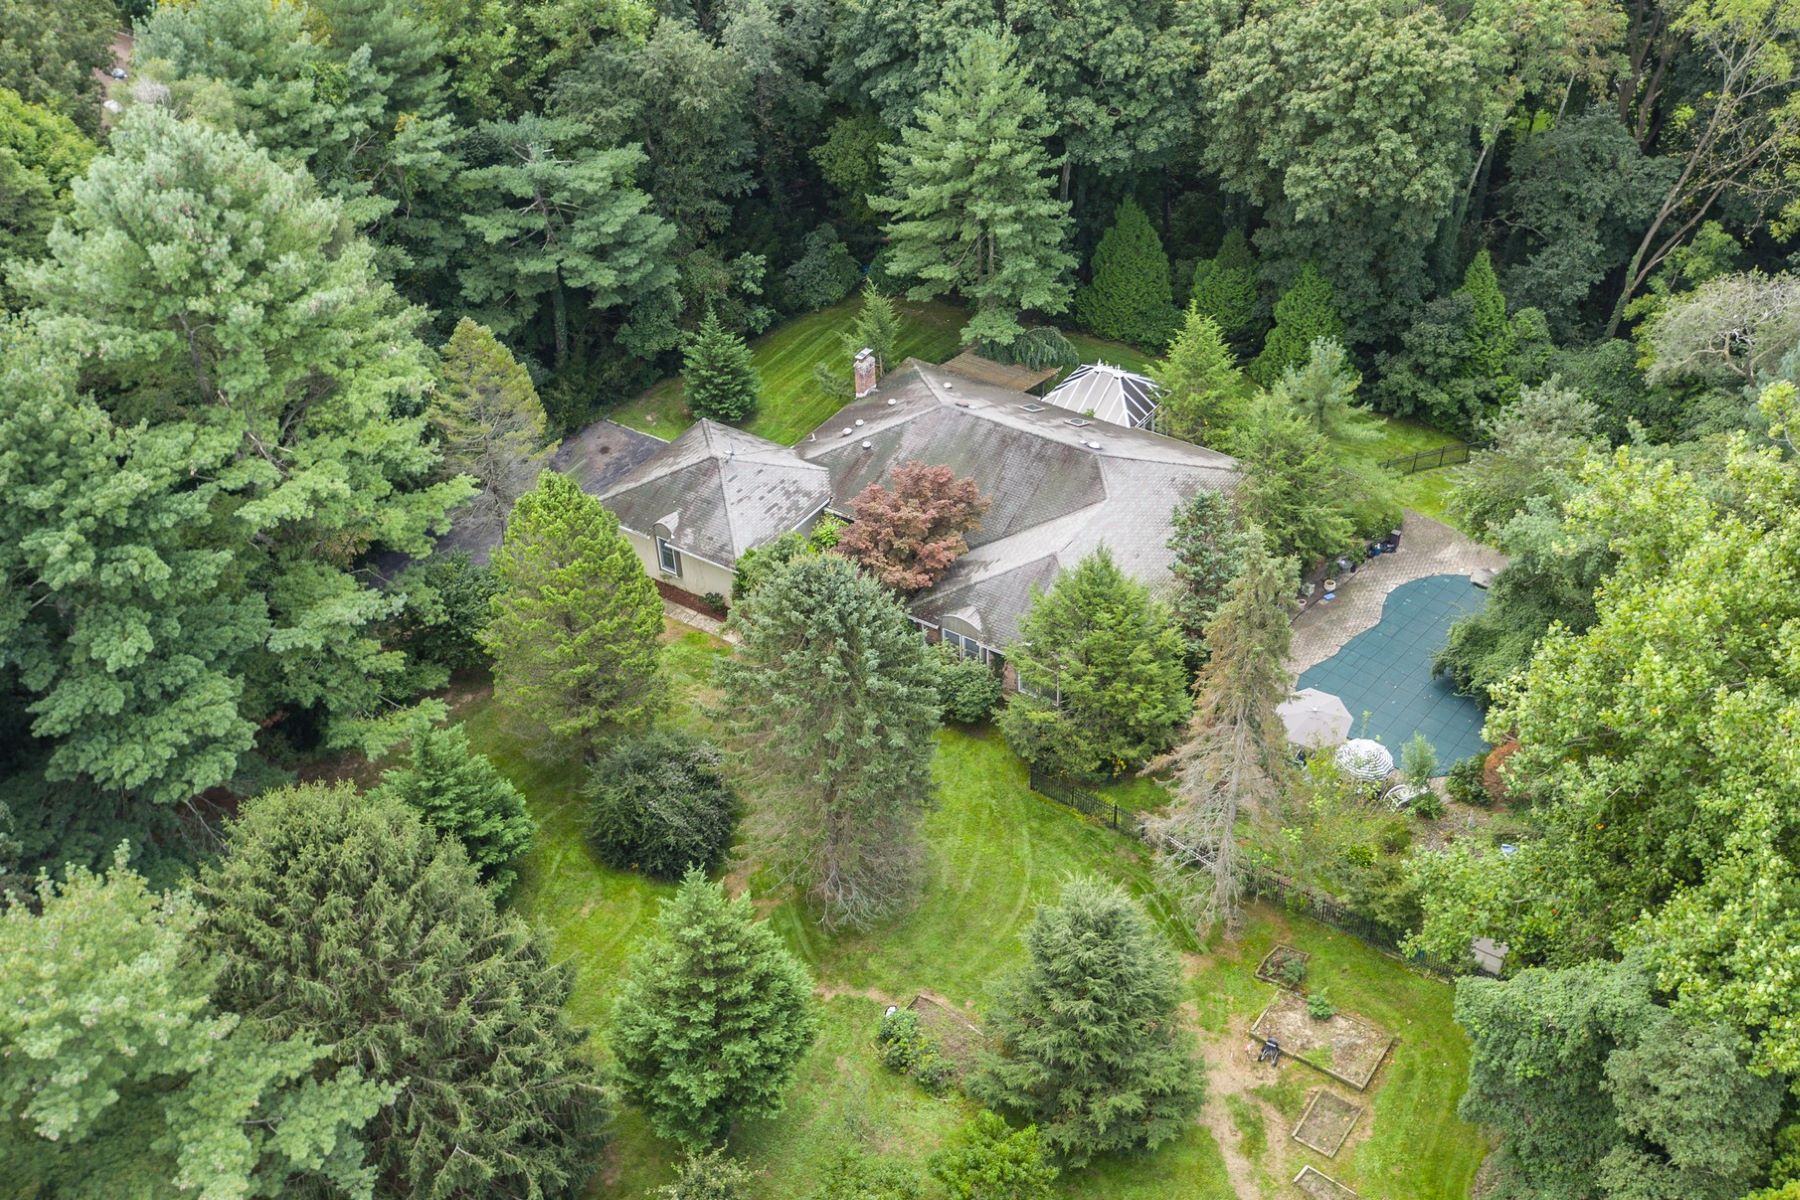 Single Family Homes for Sale at Old Brookville 18 Dolly Cam Ln Old Brookville, New York 11545 United States